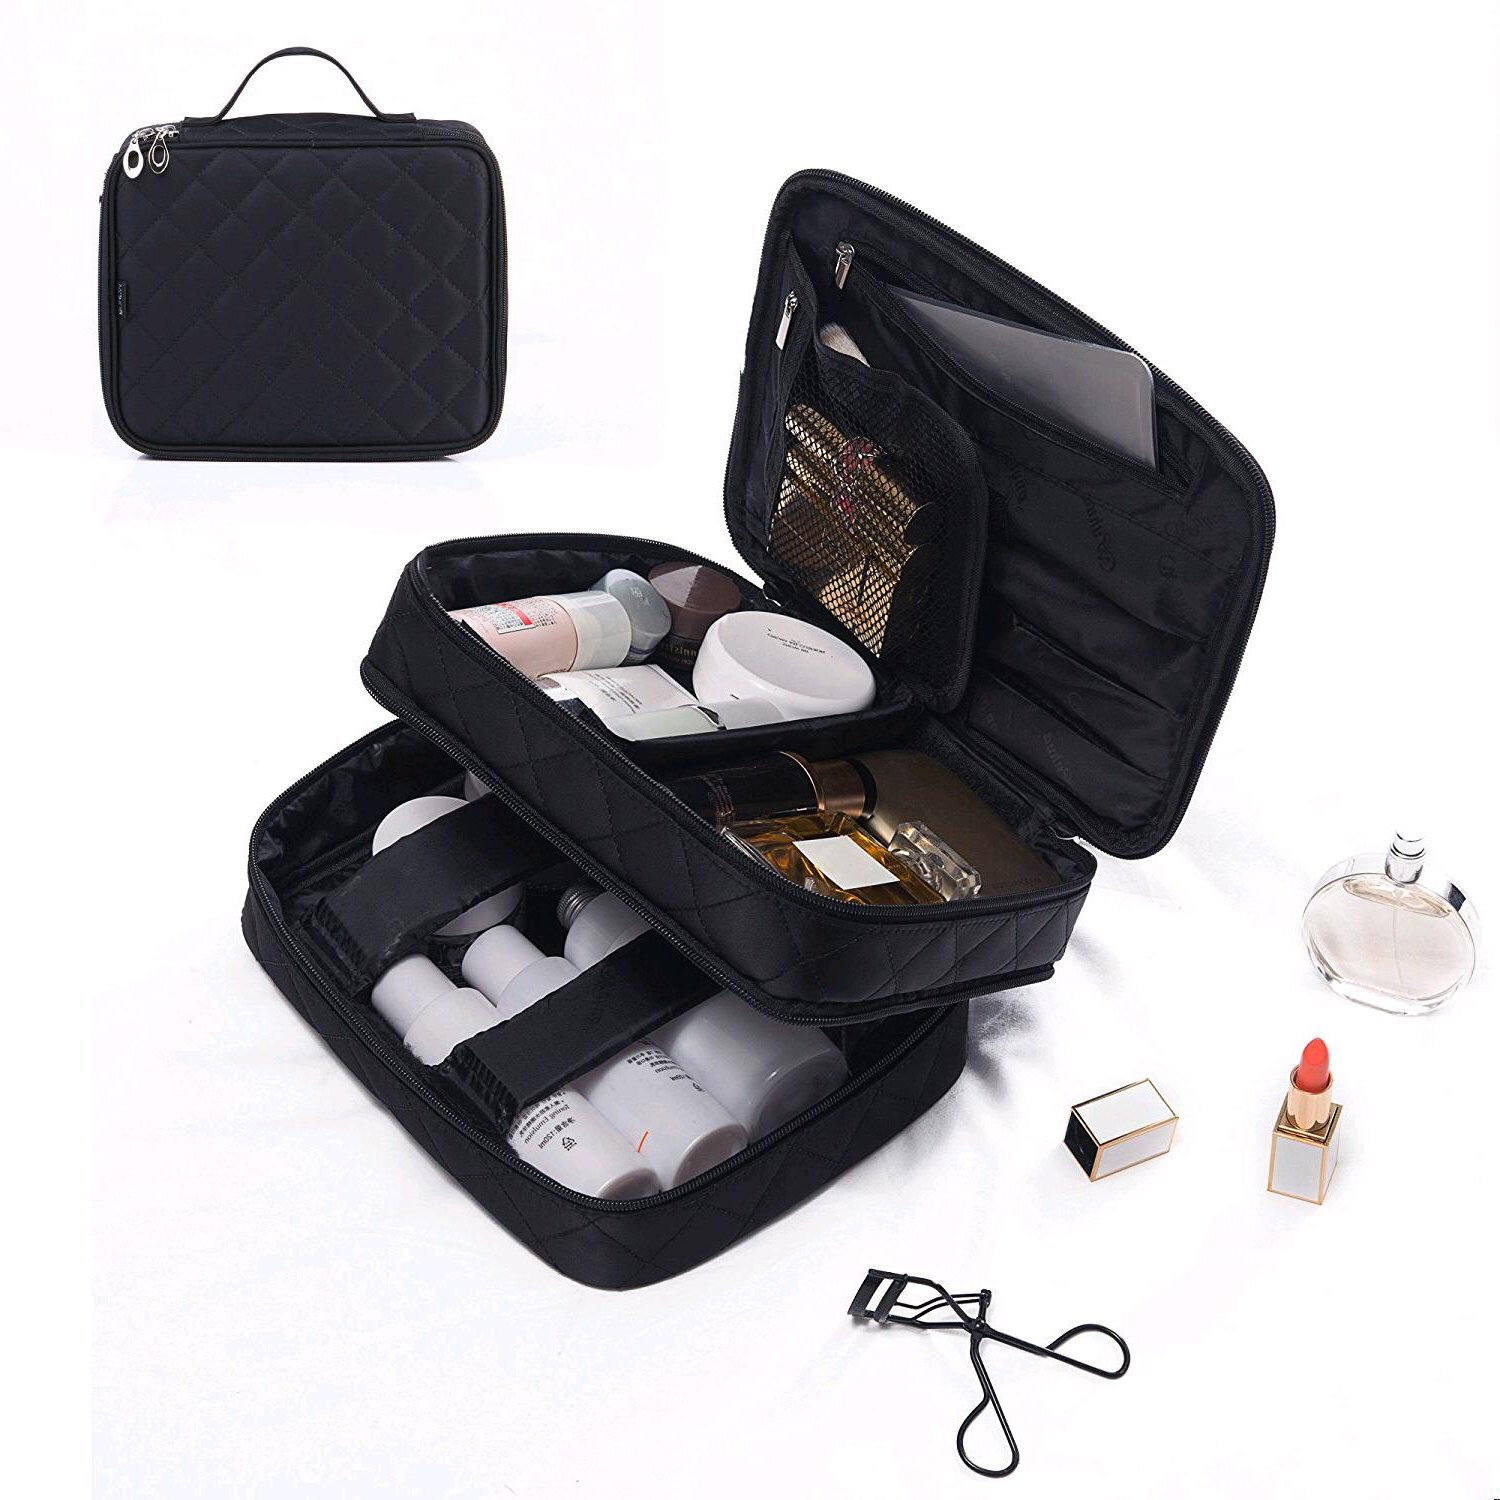 Portable Big Makeup Bag, Wuhua Toiletry/Storage Bag,Train Case Multifunction Professional for Cosmetic Case,Travel Brushes Jewelry Organizer Pouch with Box